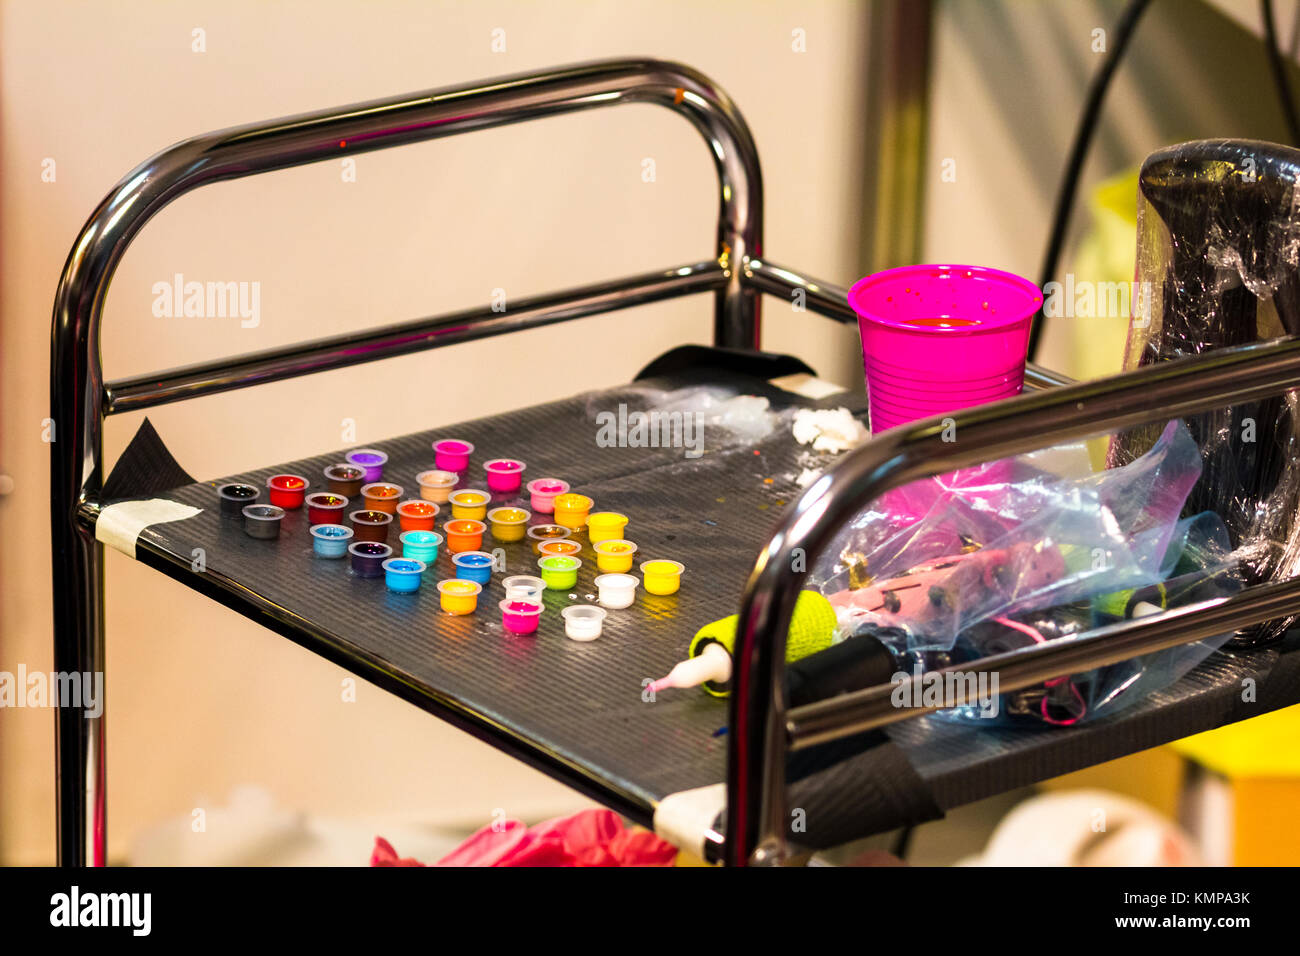 Colors and tools used for tattooing, ink and needles sterilized instruments. - Stock Image